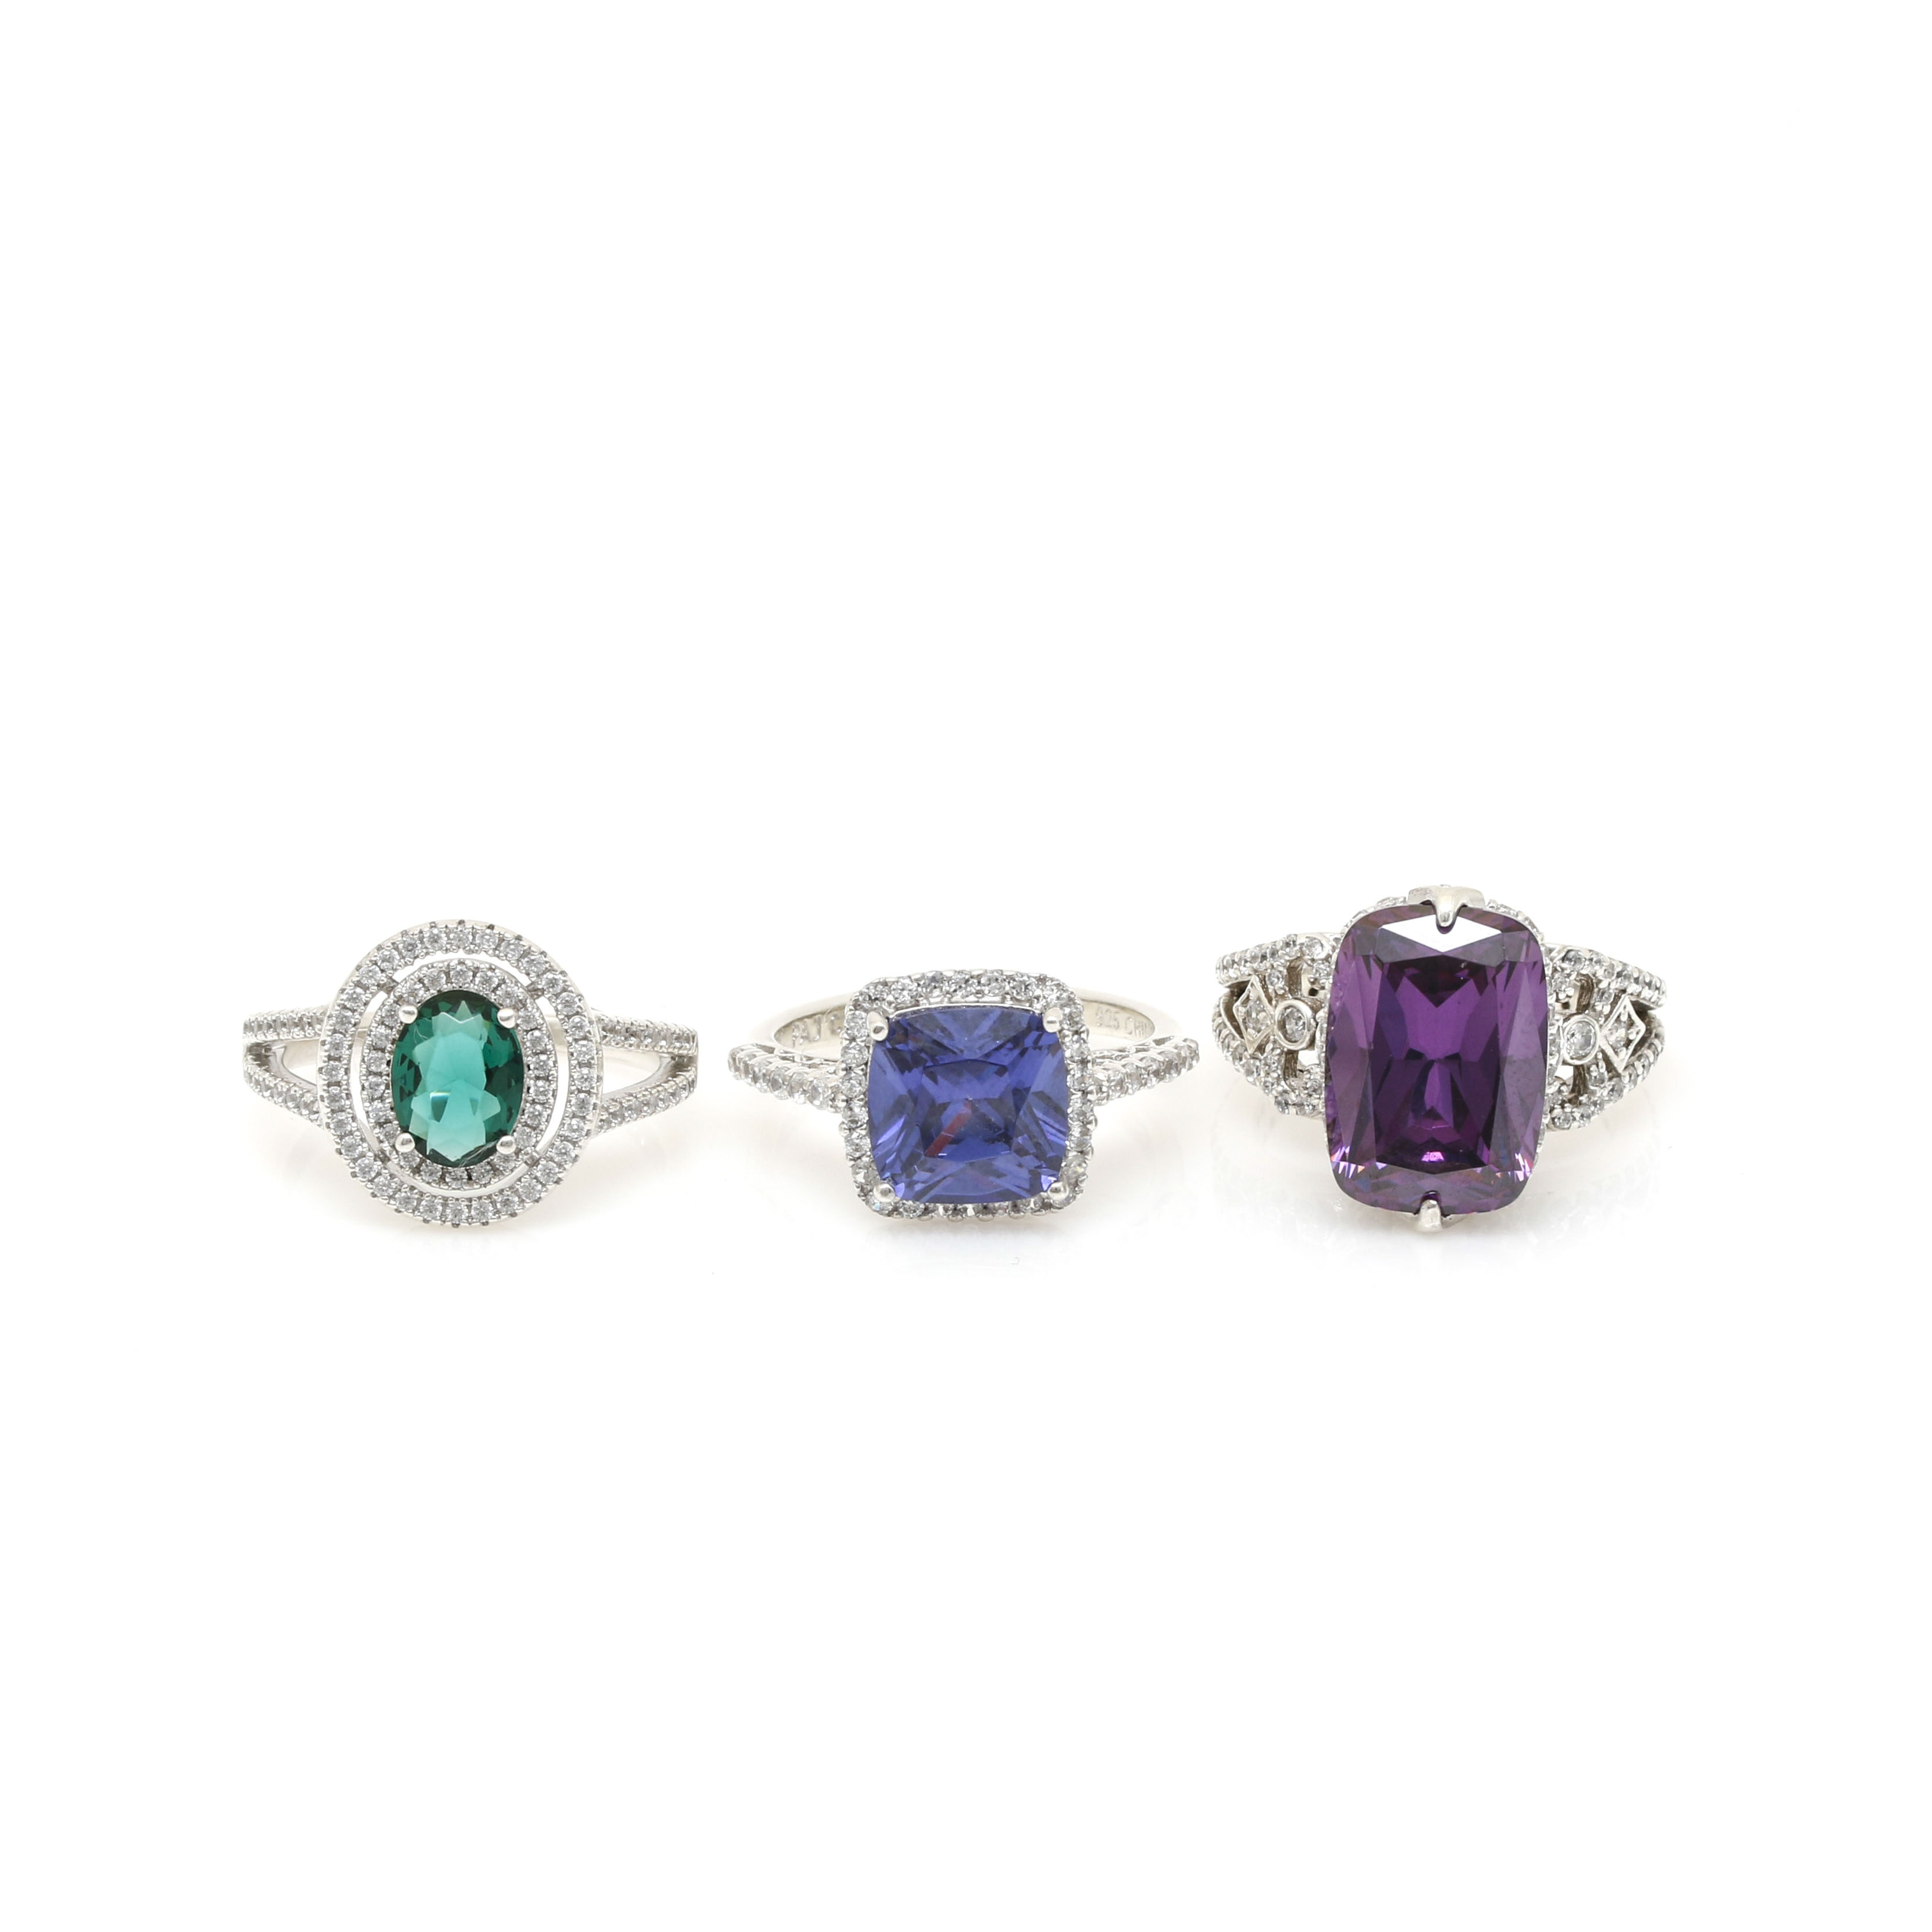 Selection of Sterling Silver Cubic Zirconia Rings